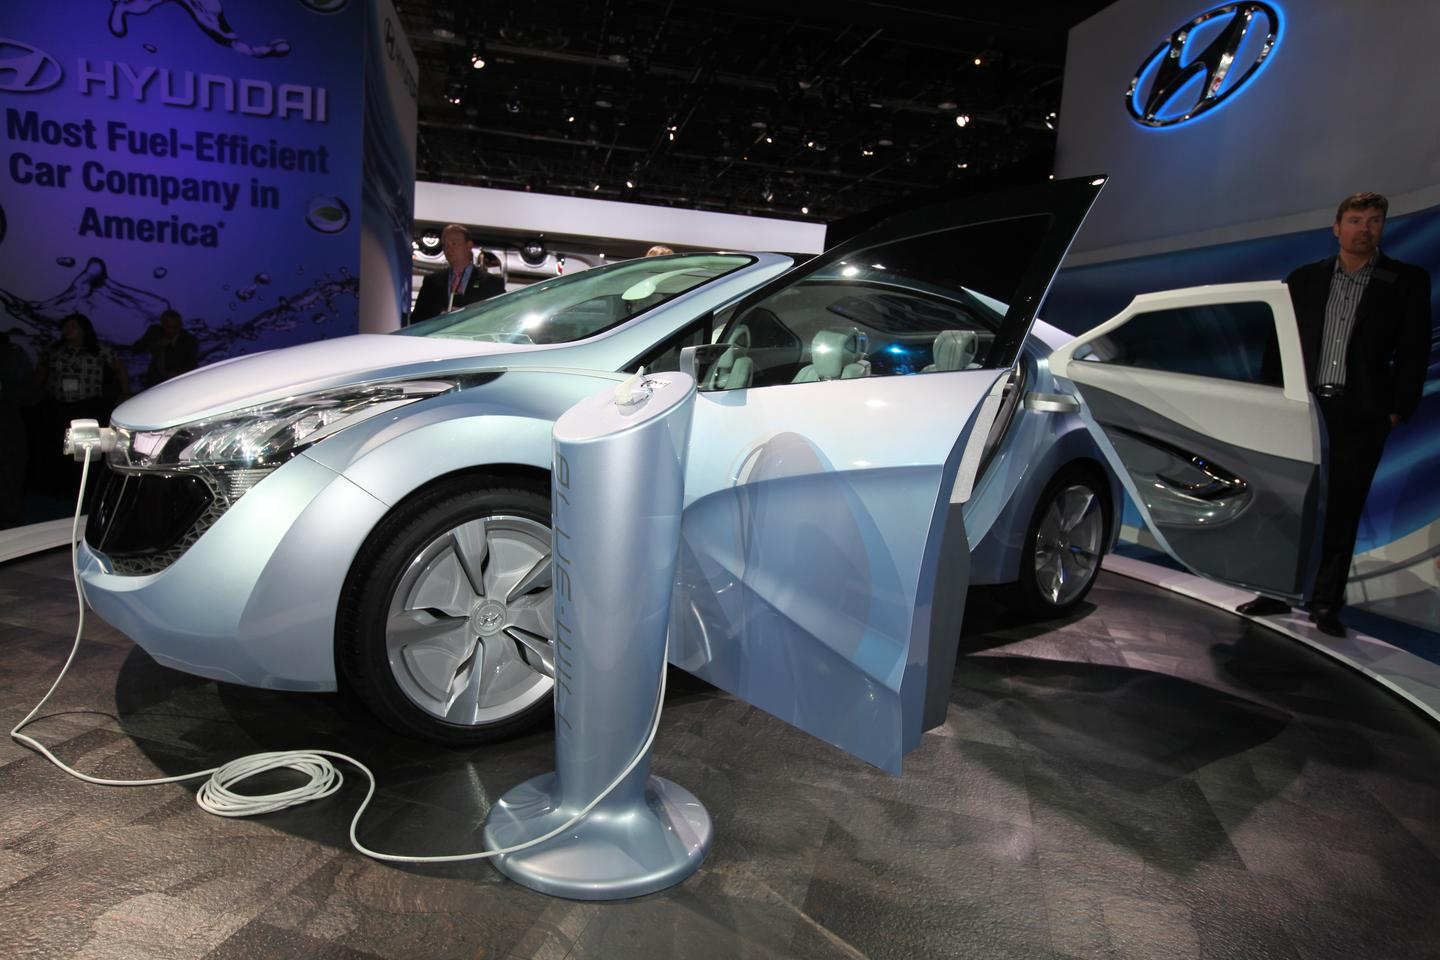 Hyundai's Blue Will plug-in hybrid concept.